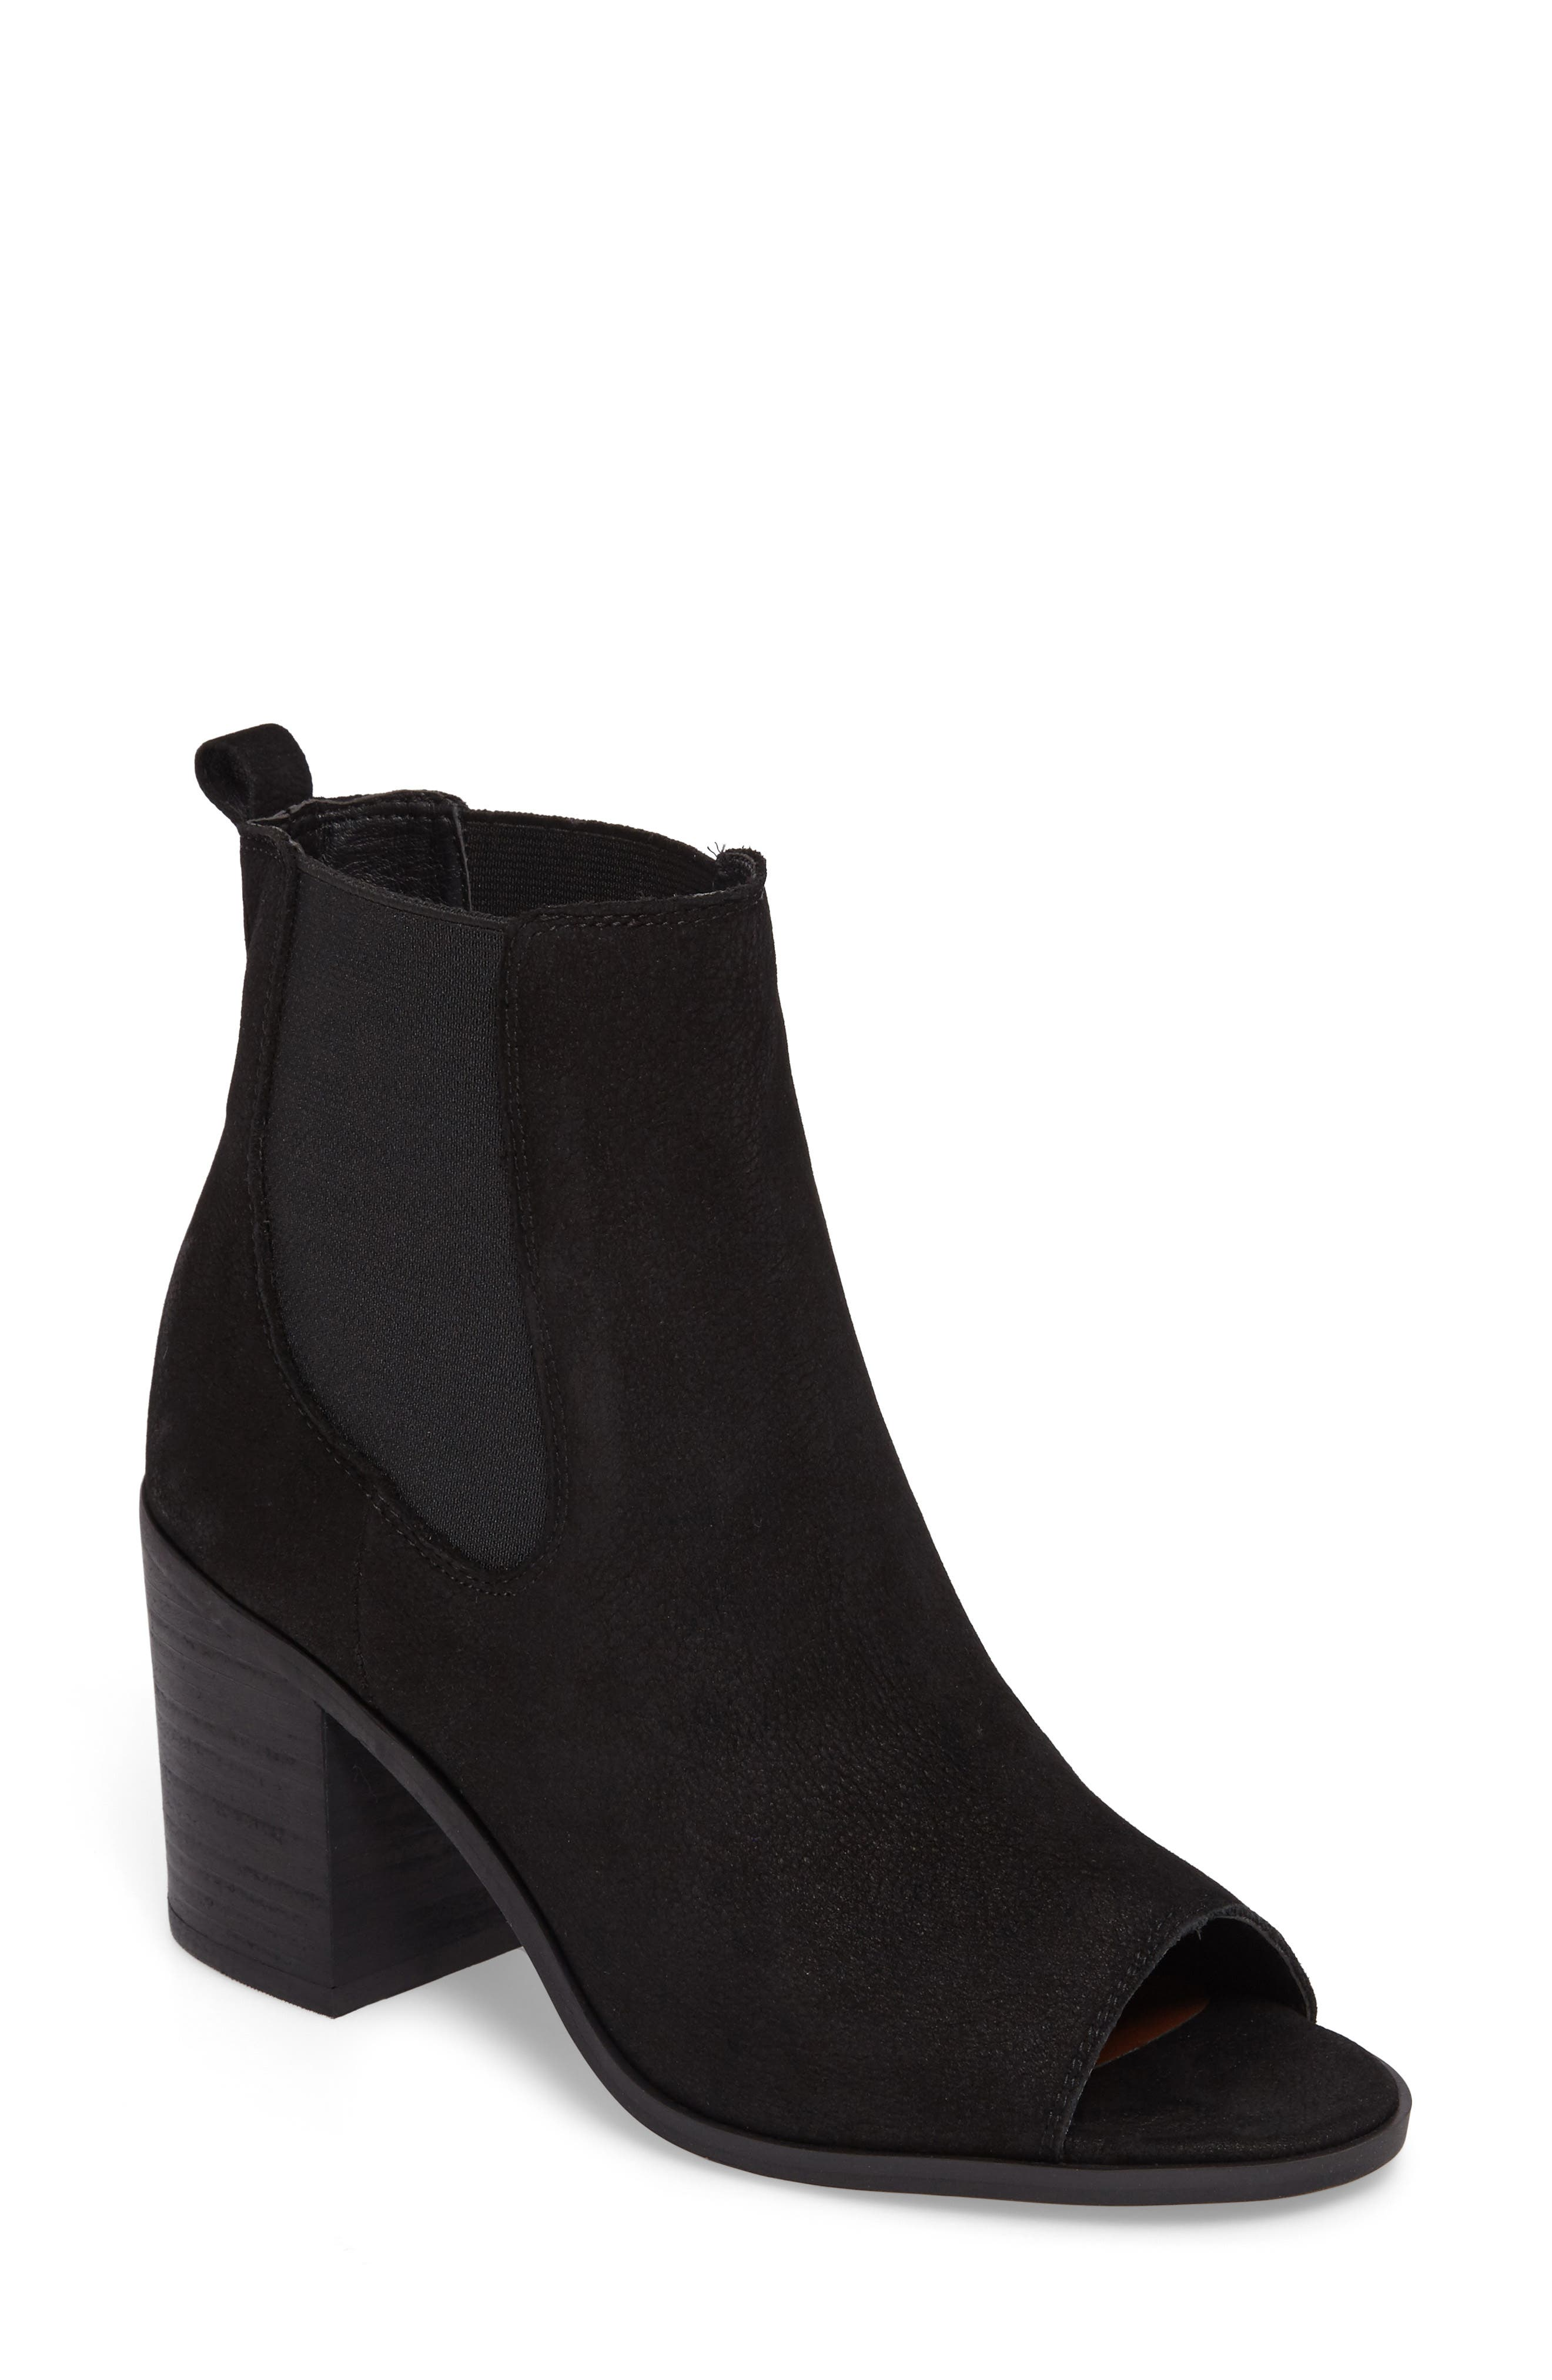 Kassidy Open Toe Chelsea Bootie,                             Main thumbnail 1, color,                             Black Leather